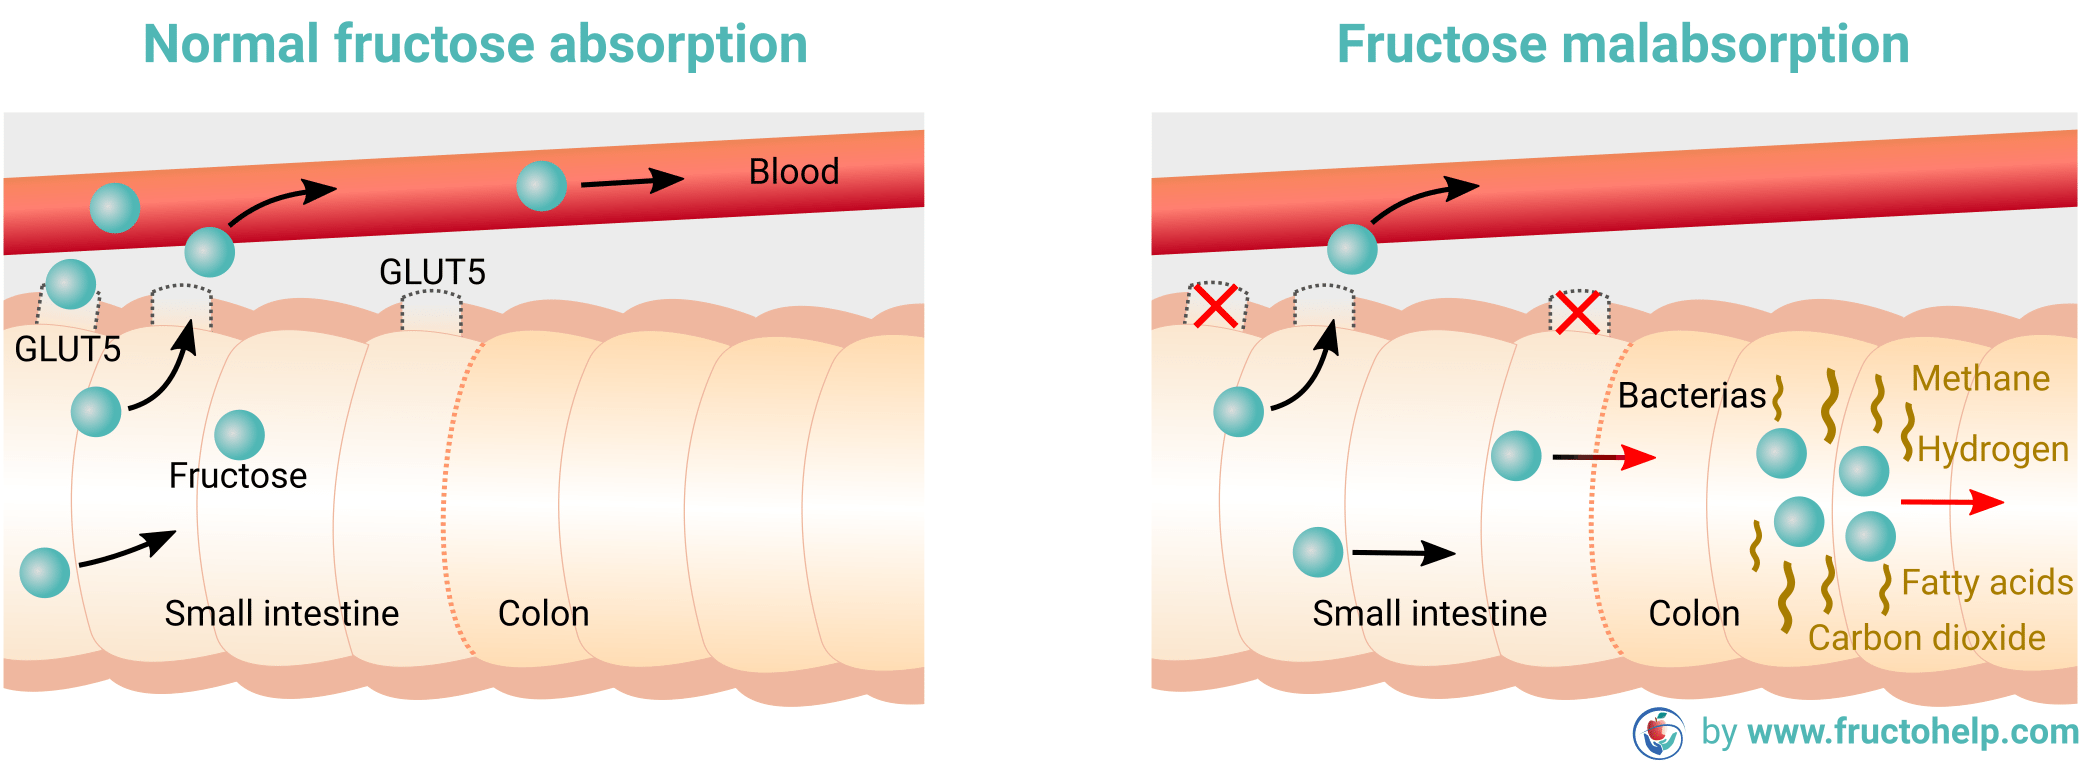 FructoHelp - Normal Fructose Absorption and Fructose Malabsorption (Dietary Fructose Intolerance) - www.fructohelp.com